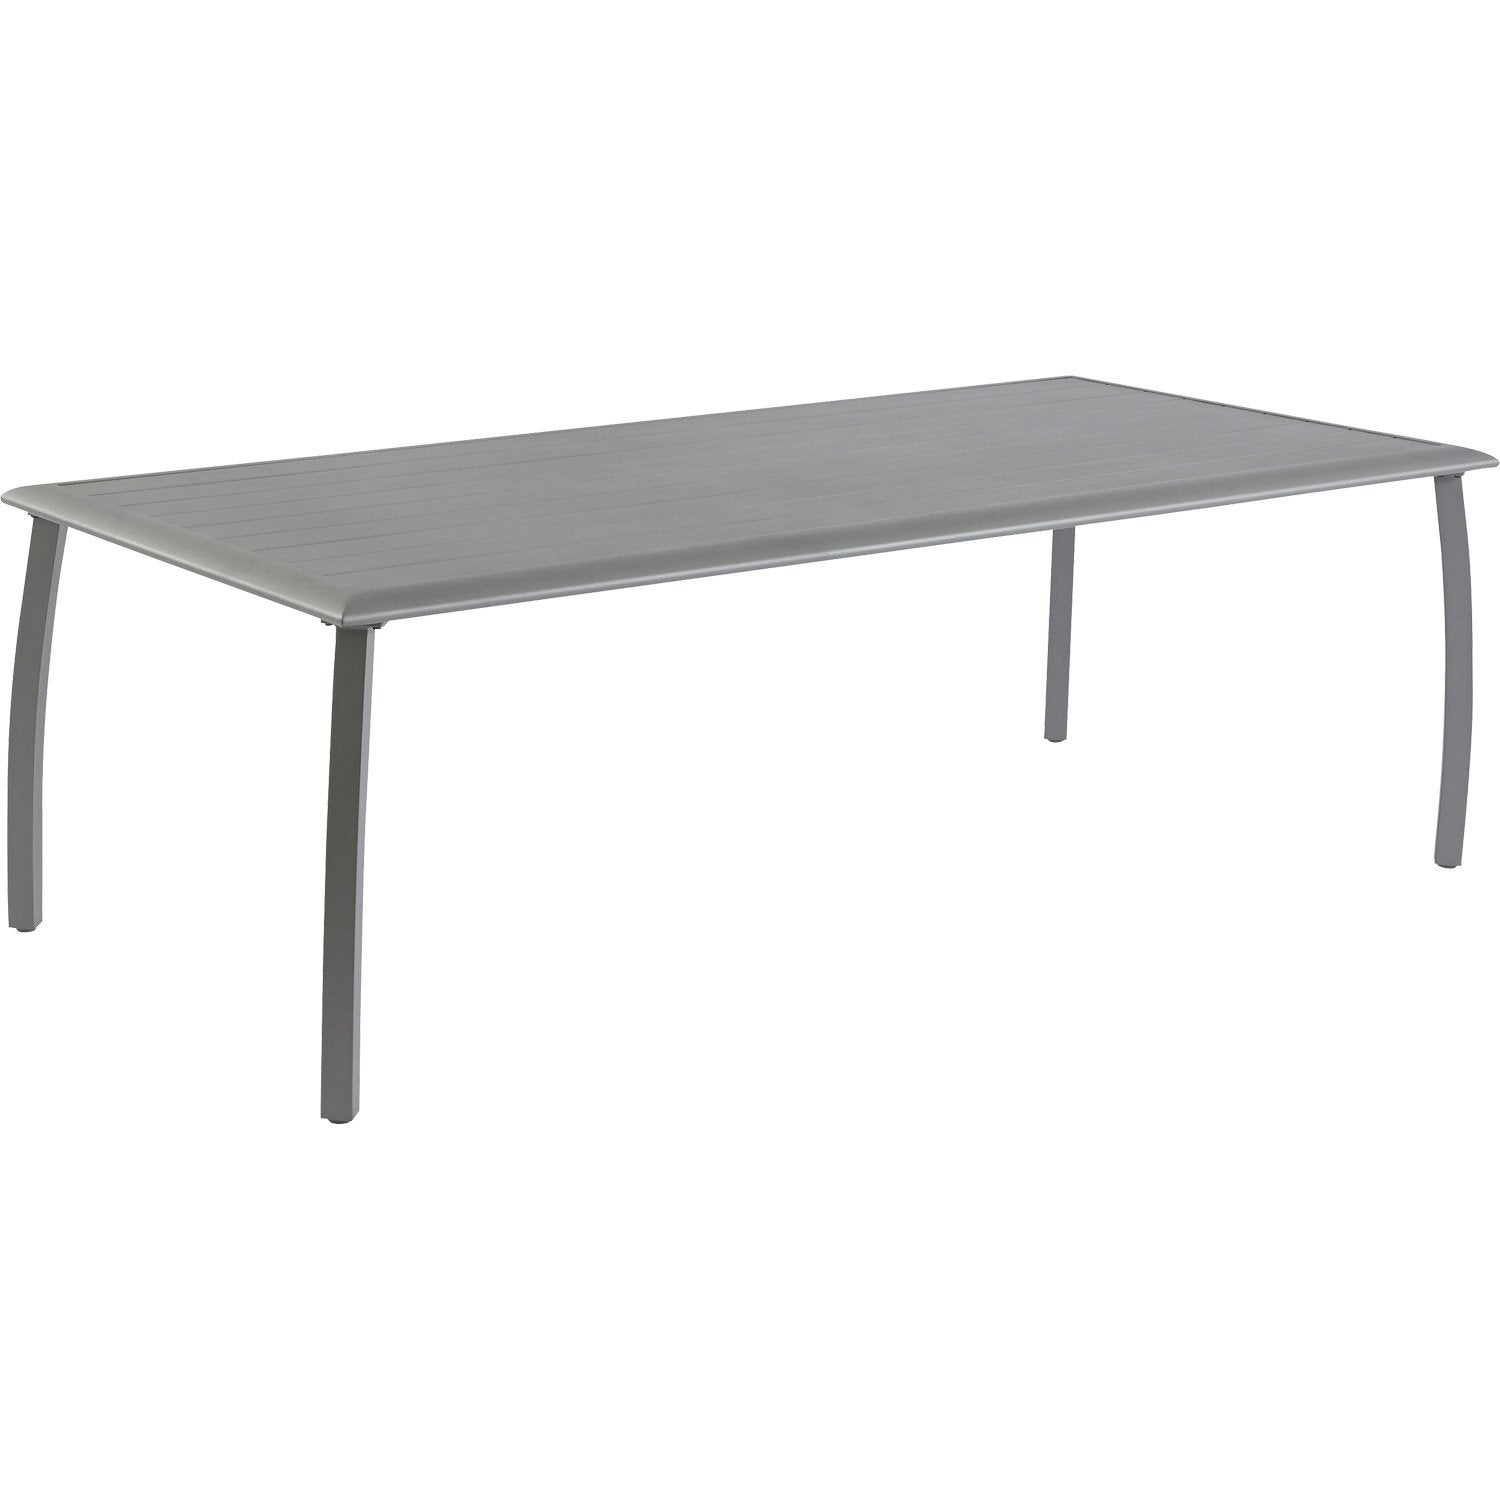 Table de jardin en aluminium azuro royal grey proloisirs for Table de nuit leroy merlin